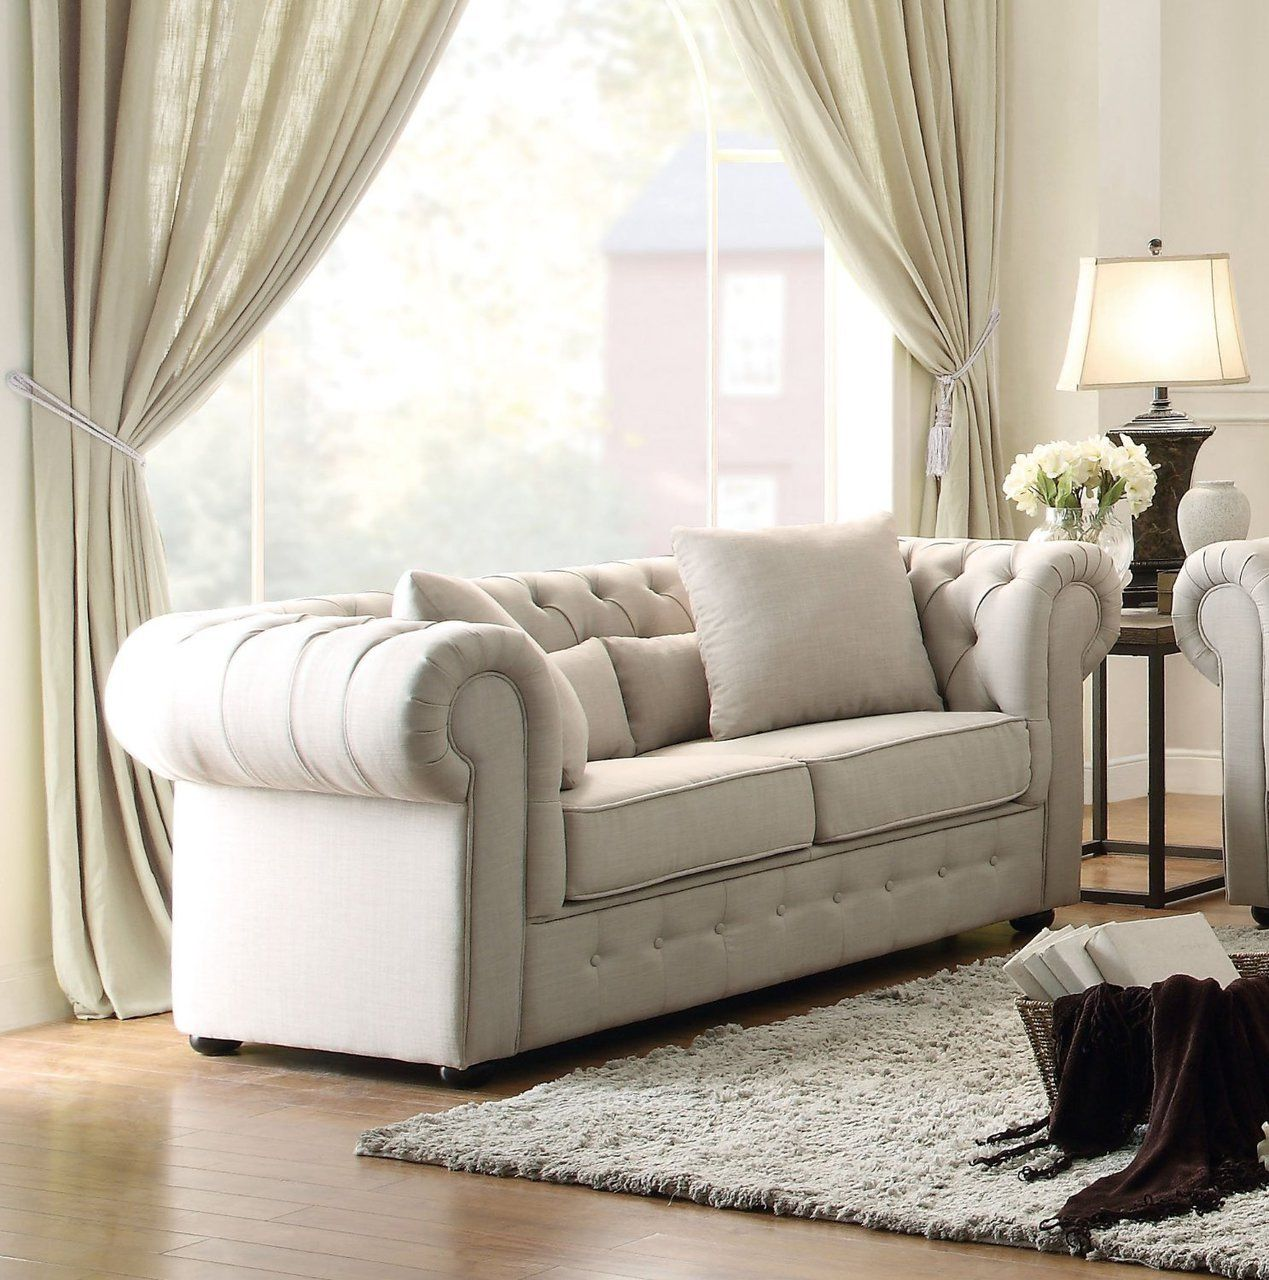 Homelegance Grand Chesterfield Love Seat Upholstered Button Tufted ...